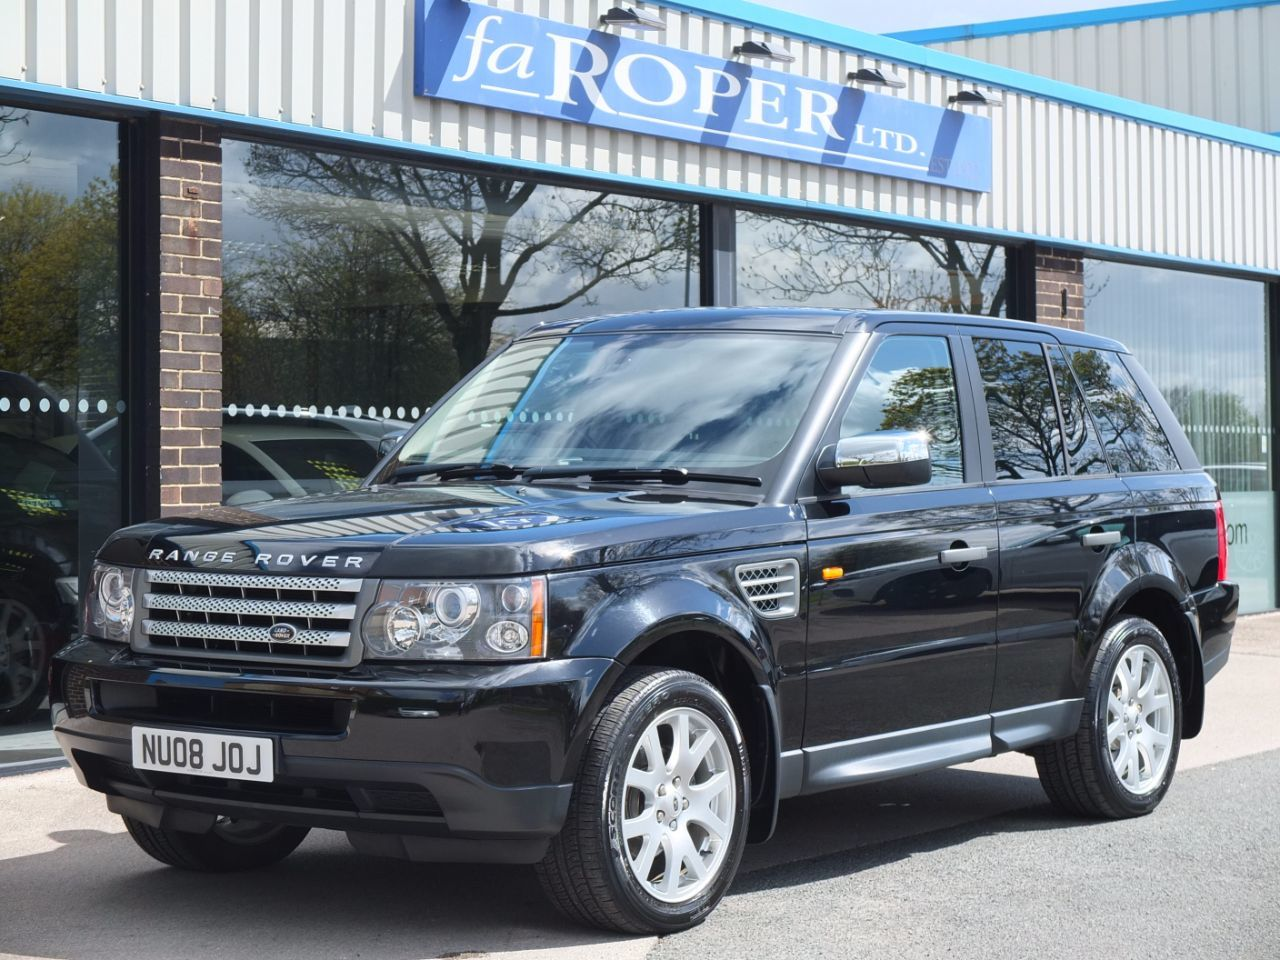 Land Rover Range Rover Sport 2.7 TDV6 XS Edition Auto Estate Diesel Java Black MetallicLand Rover Range Rover Sport 2.7 TDV6 XS Edition Auto Estate Diesel Java Black Metallic at fa Roper Ltd Bradford